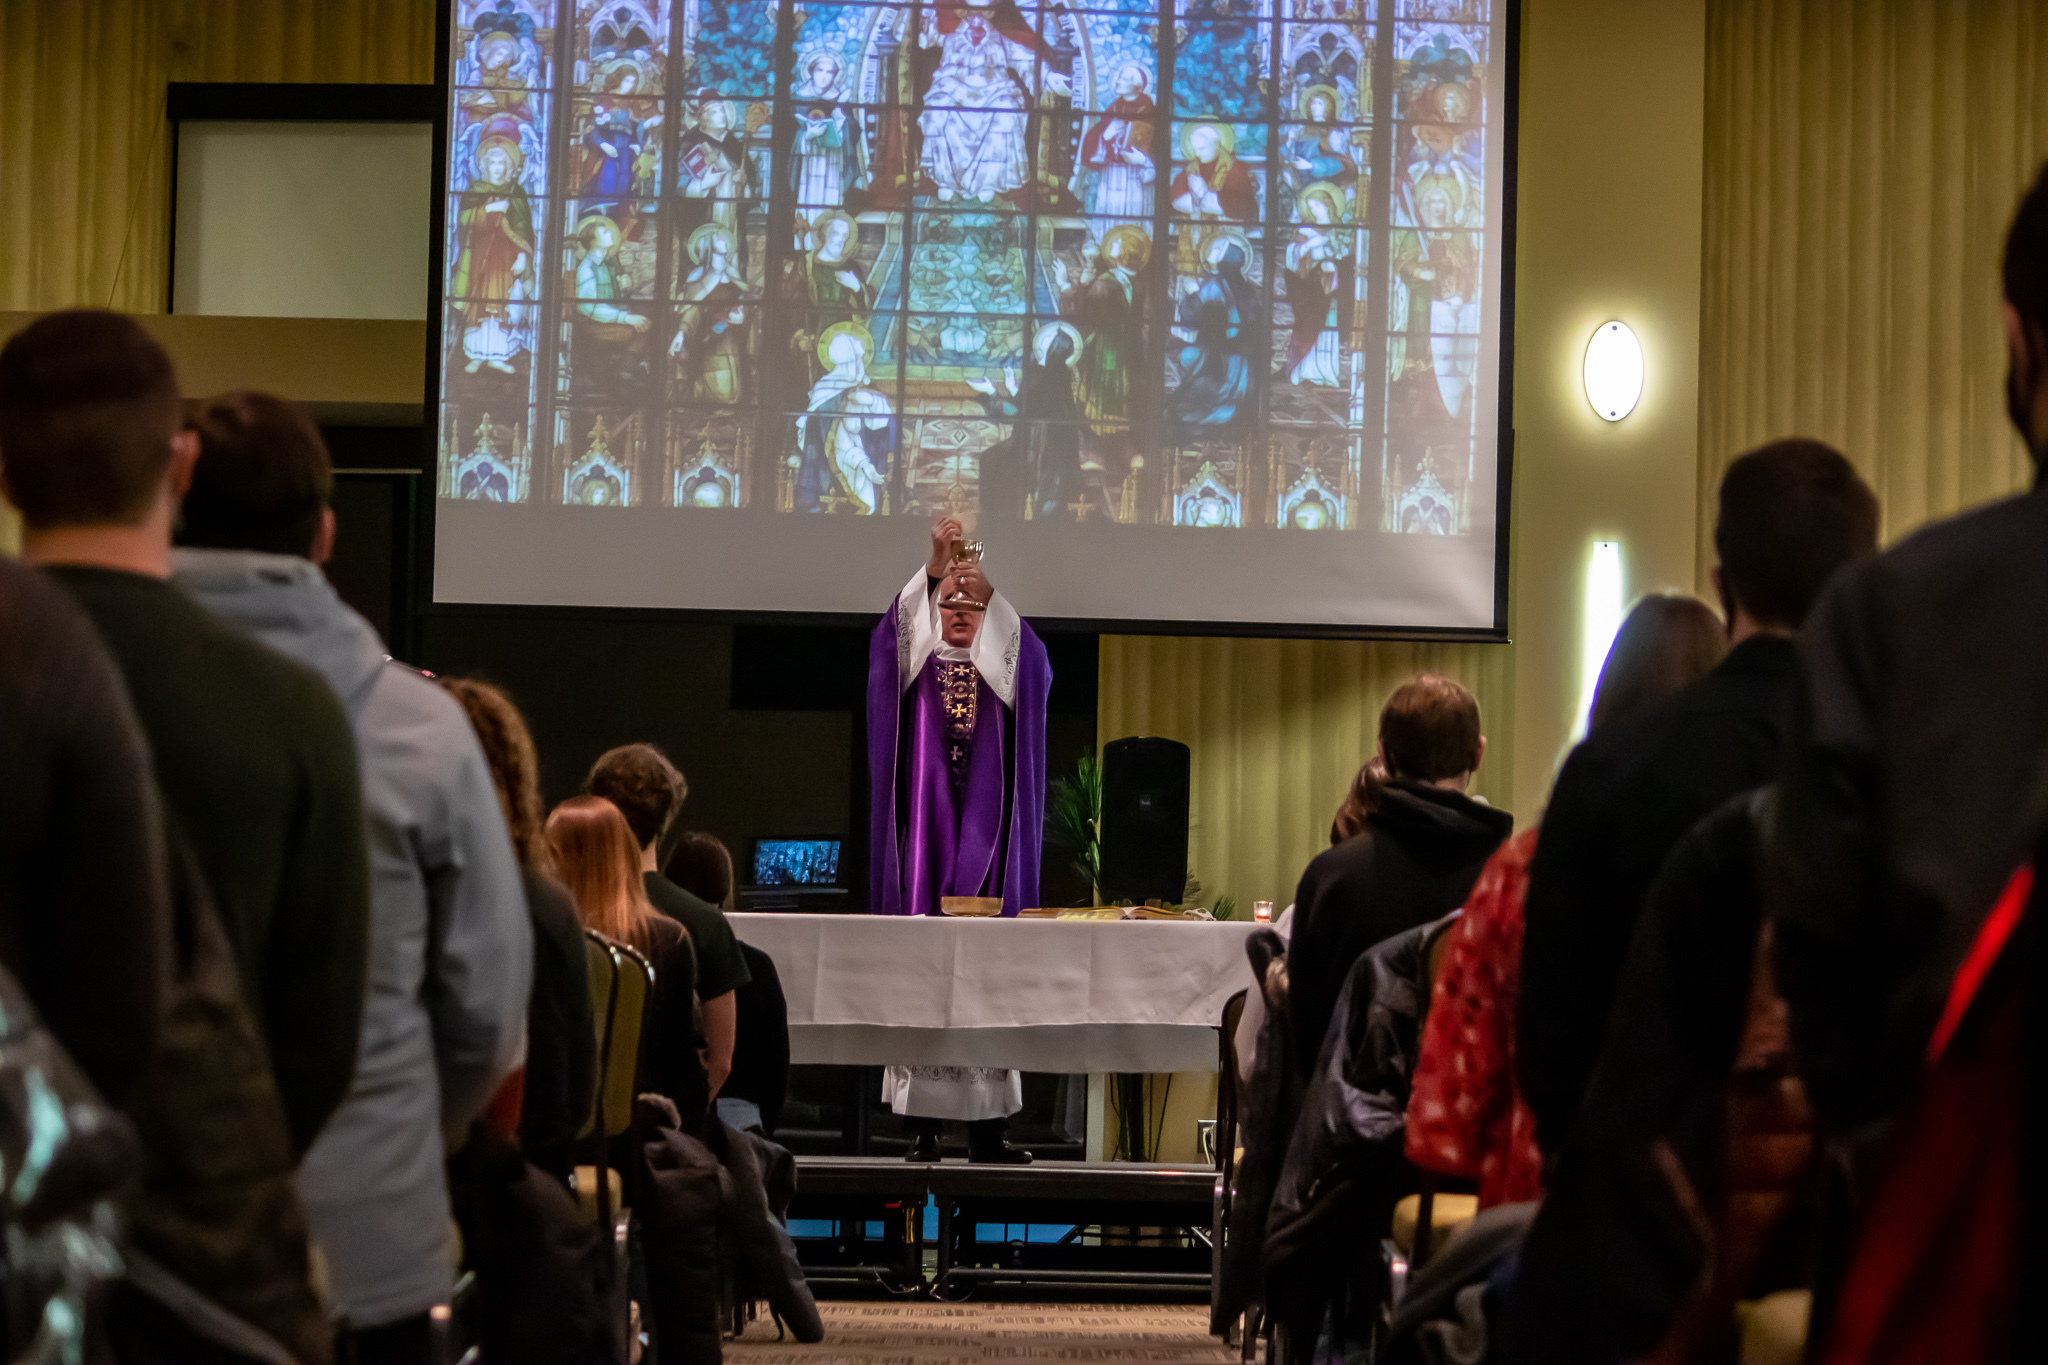 Fr. Cheney Celebrates Mass at NDSU Memorial Union for the Ash Wednesday Mass.